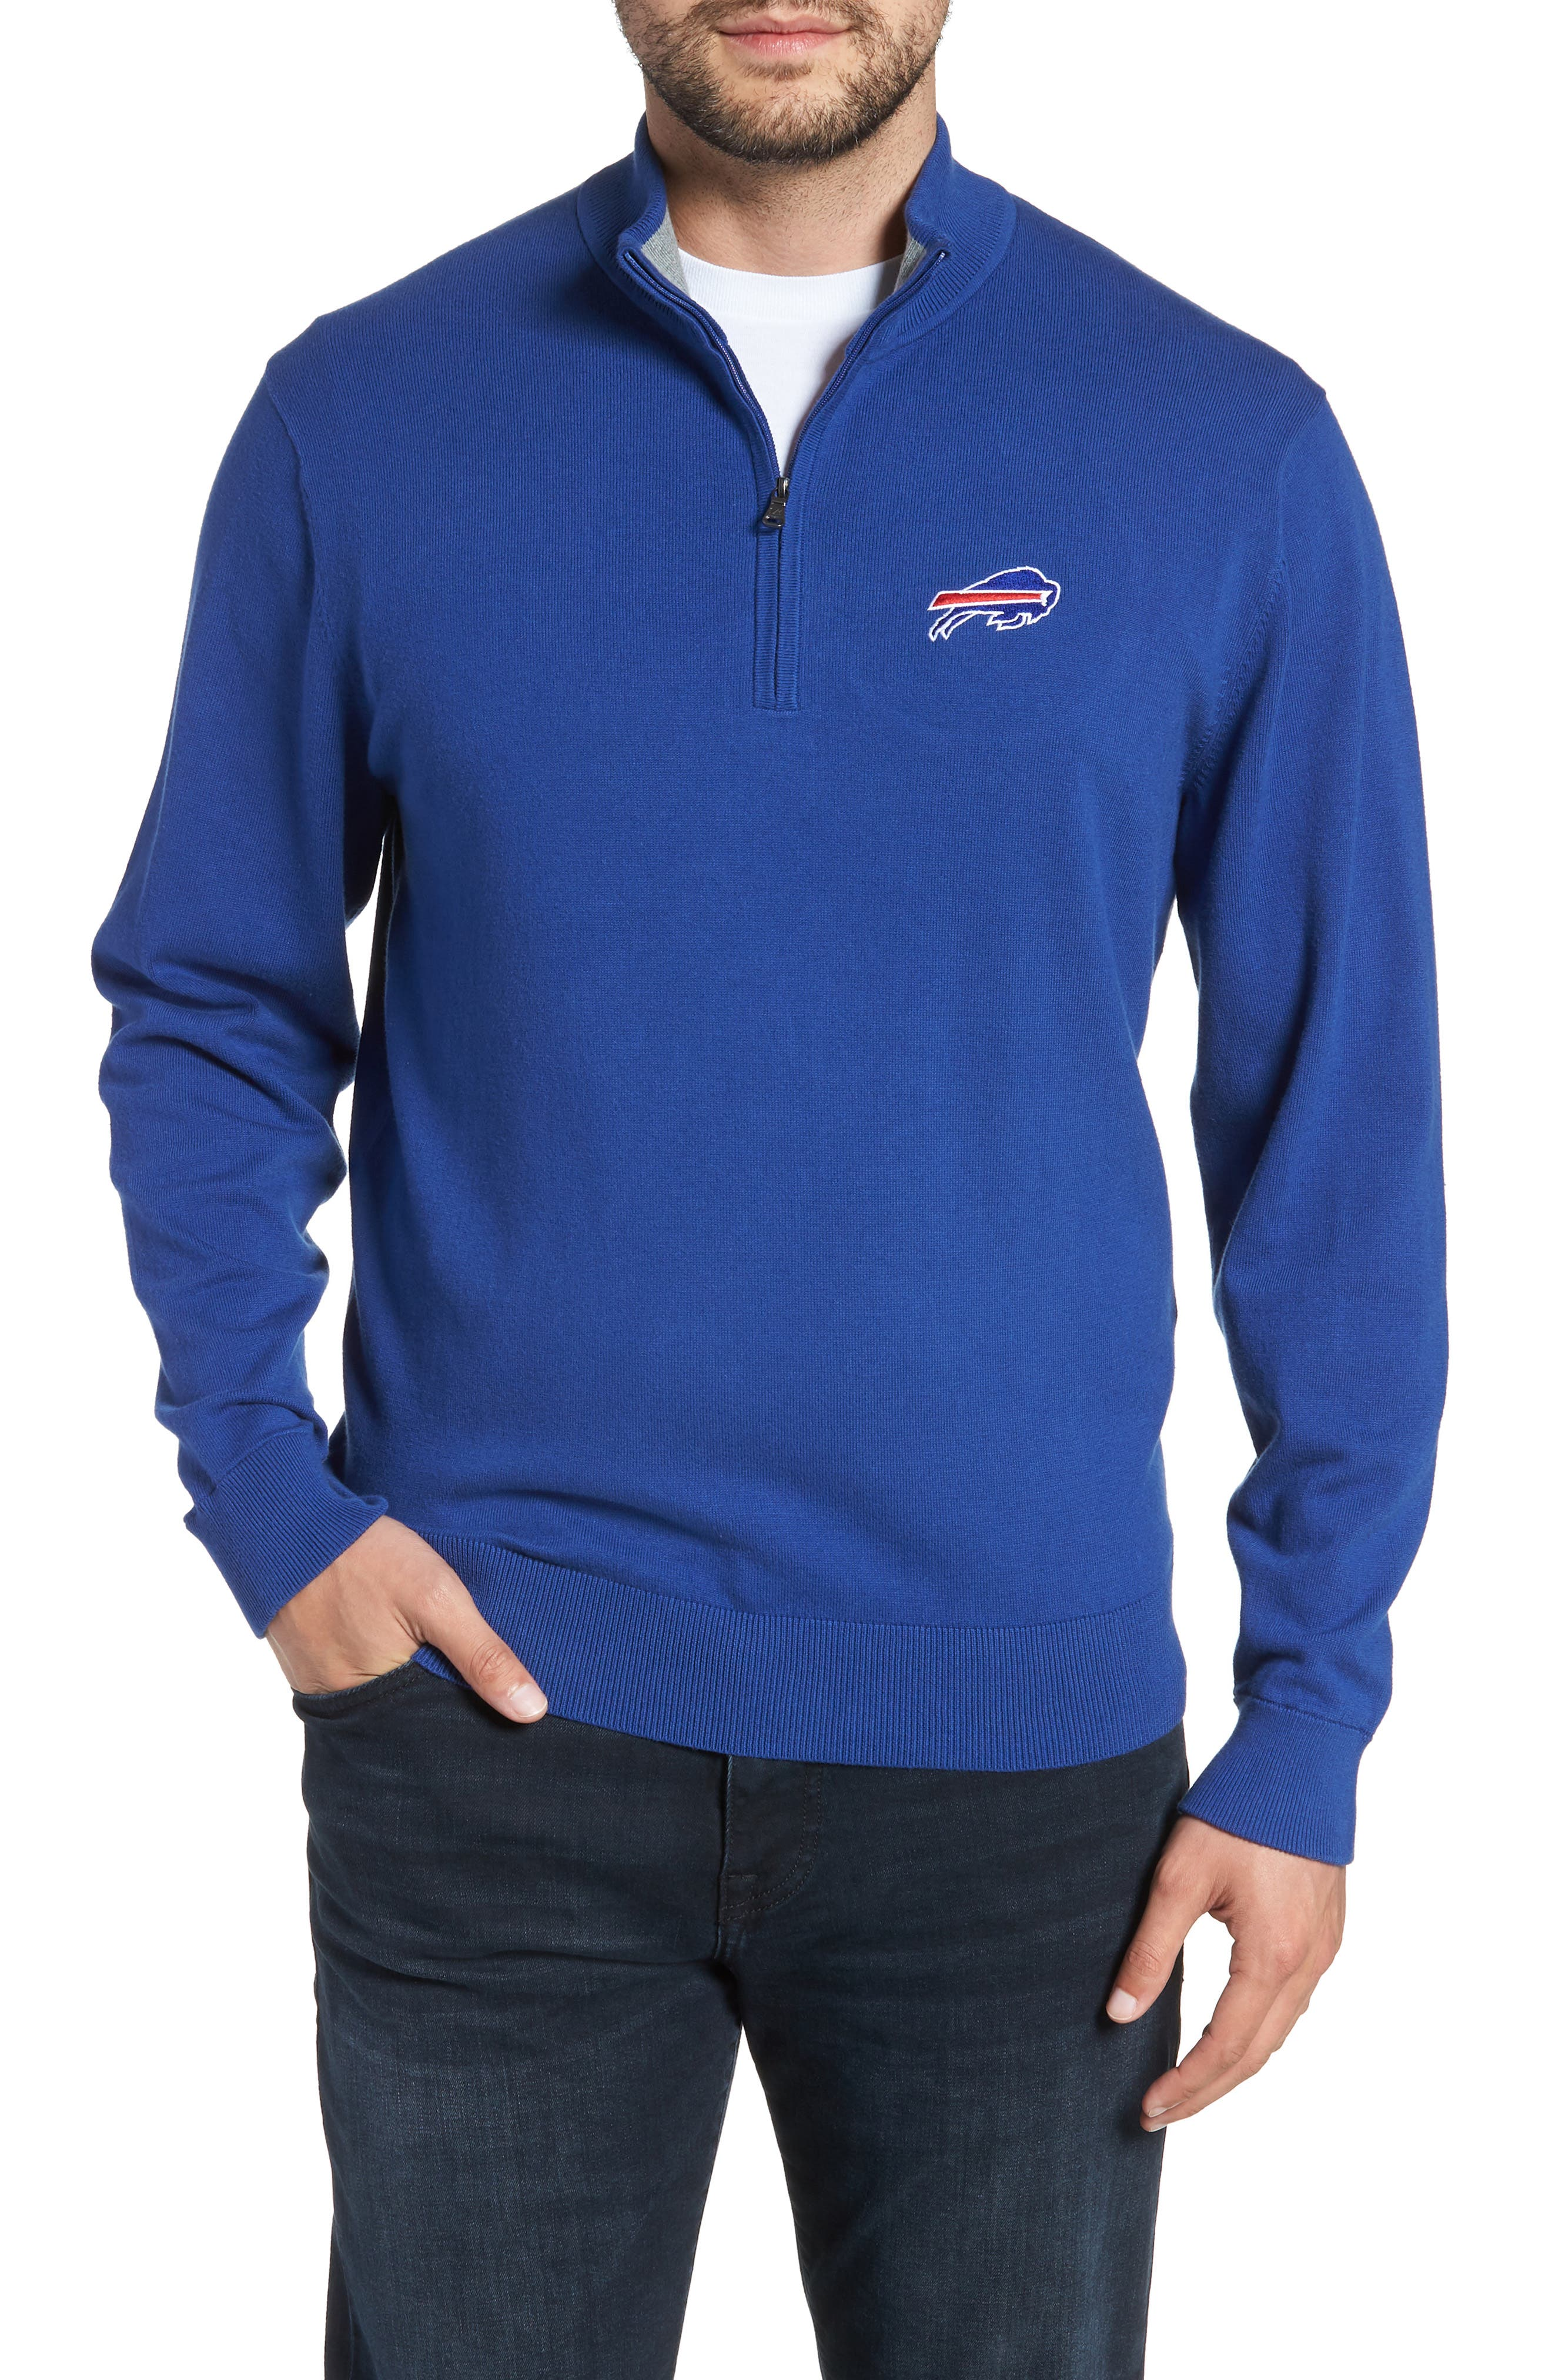 Cutter & Buck Buffalo Bills - Lakemont Regular Fit Quarter Zip Sweater In China Cheap Price Discount Cheapest Price Perfect For Sale Store Cheap Online RPArTbFj5